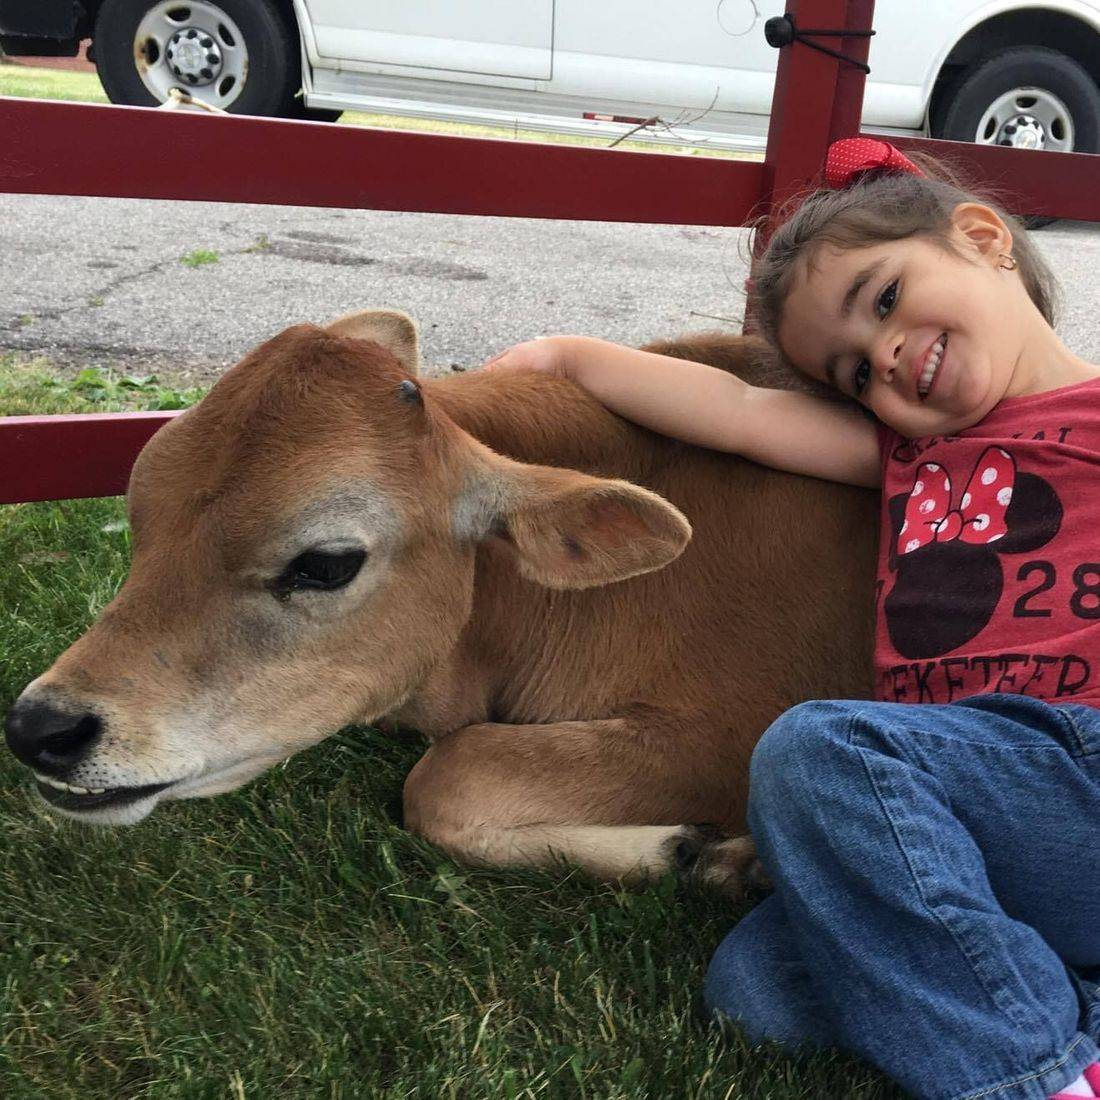 Little girl laying down with a calf